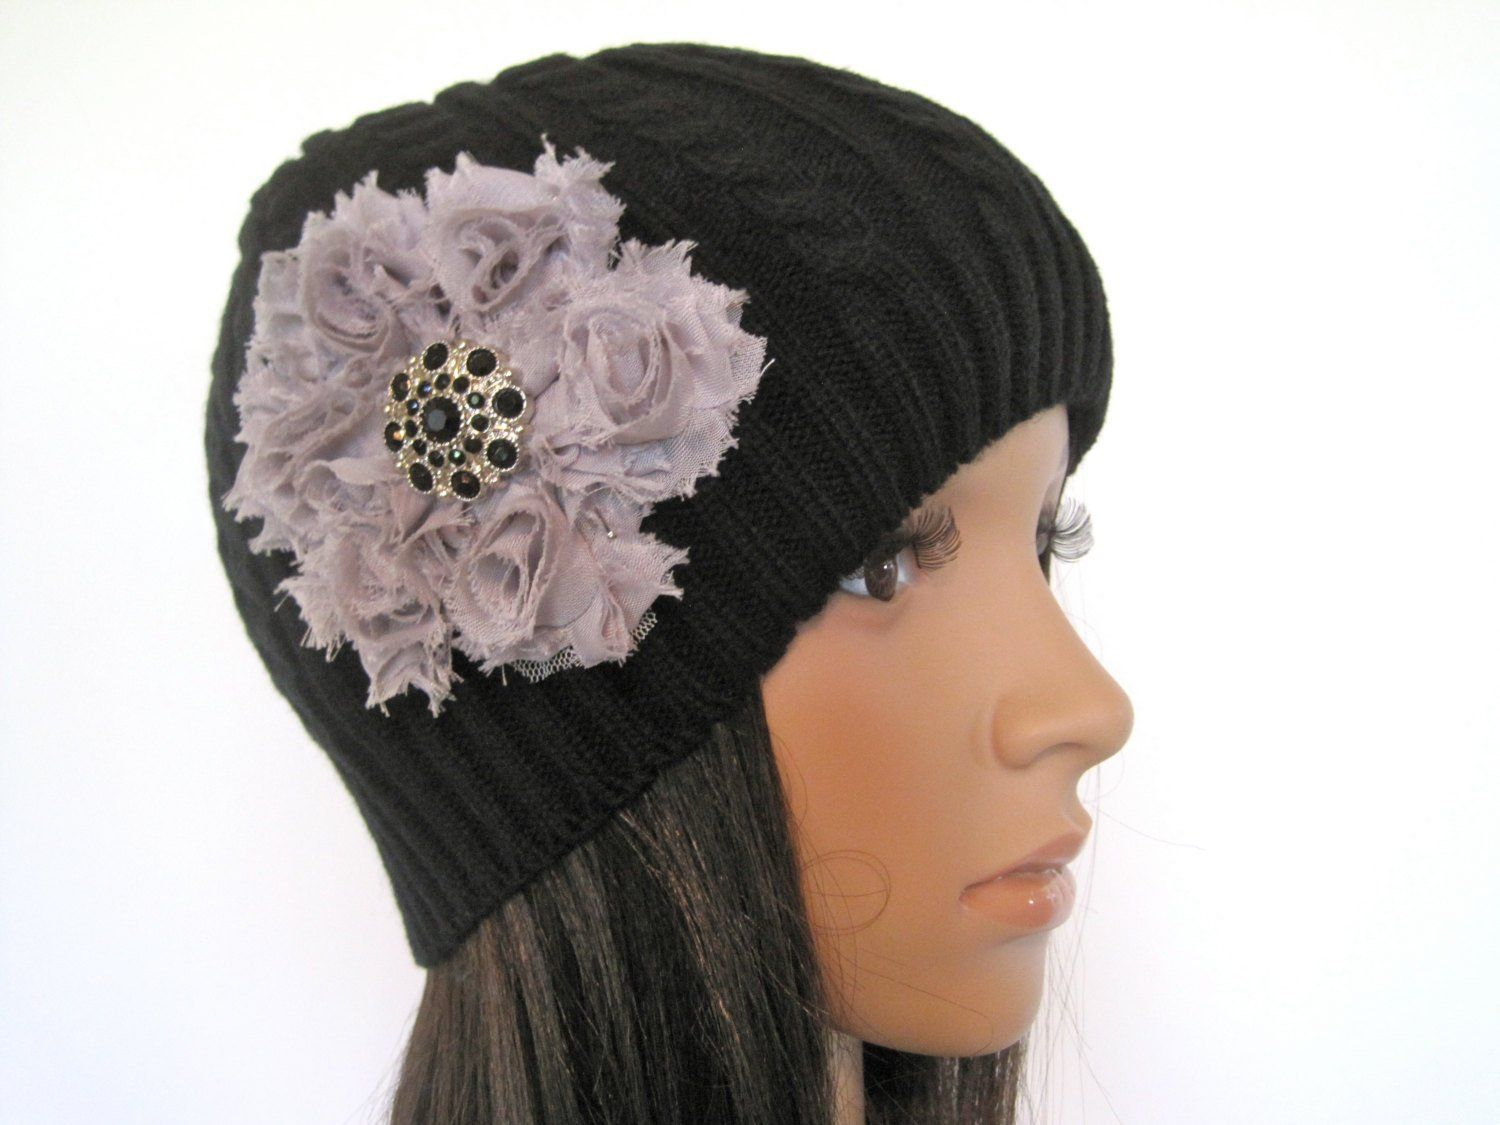 55570ede015 Black Cable Knit Women s Beanie Skull Cap with a Gray Flower and Matching  Black Accent Winter Hat and Accessories Women s Hats by theraggedyrose on  Etsy